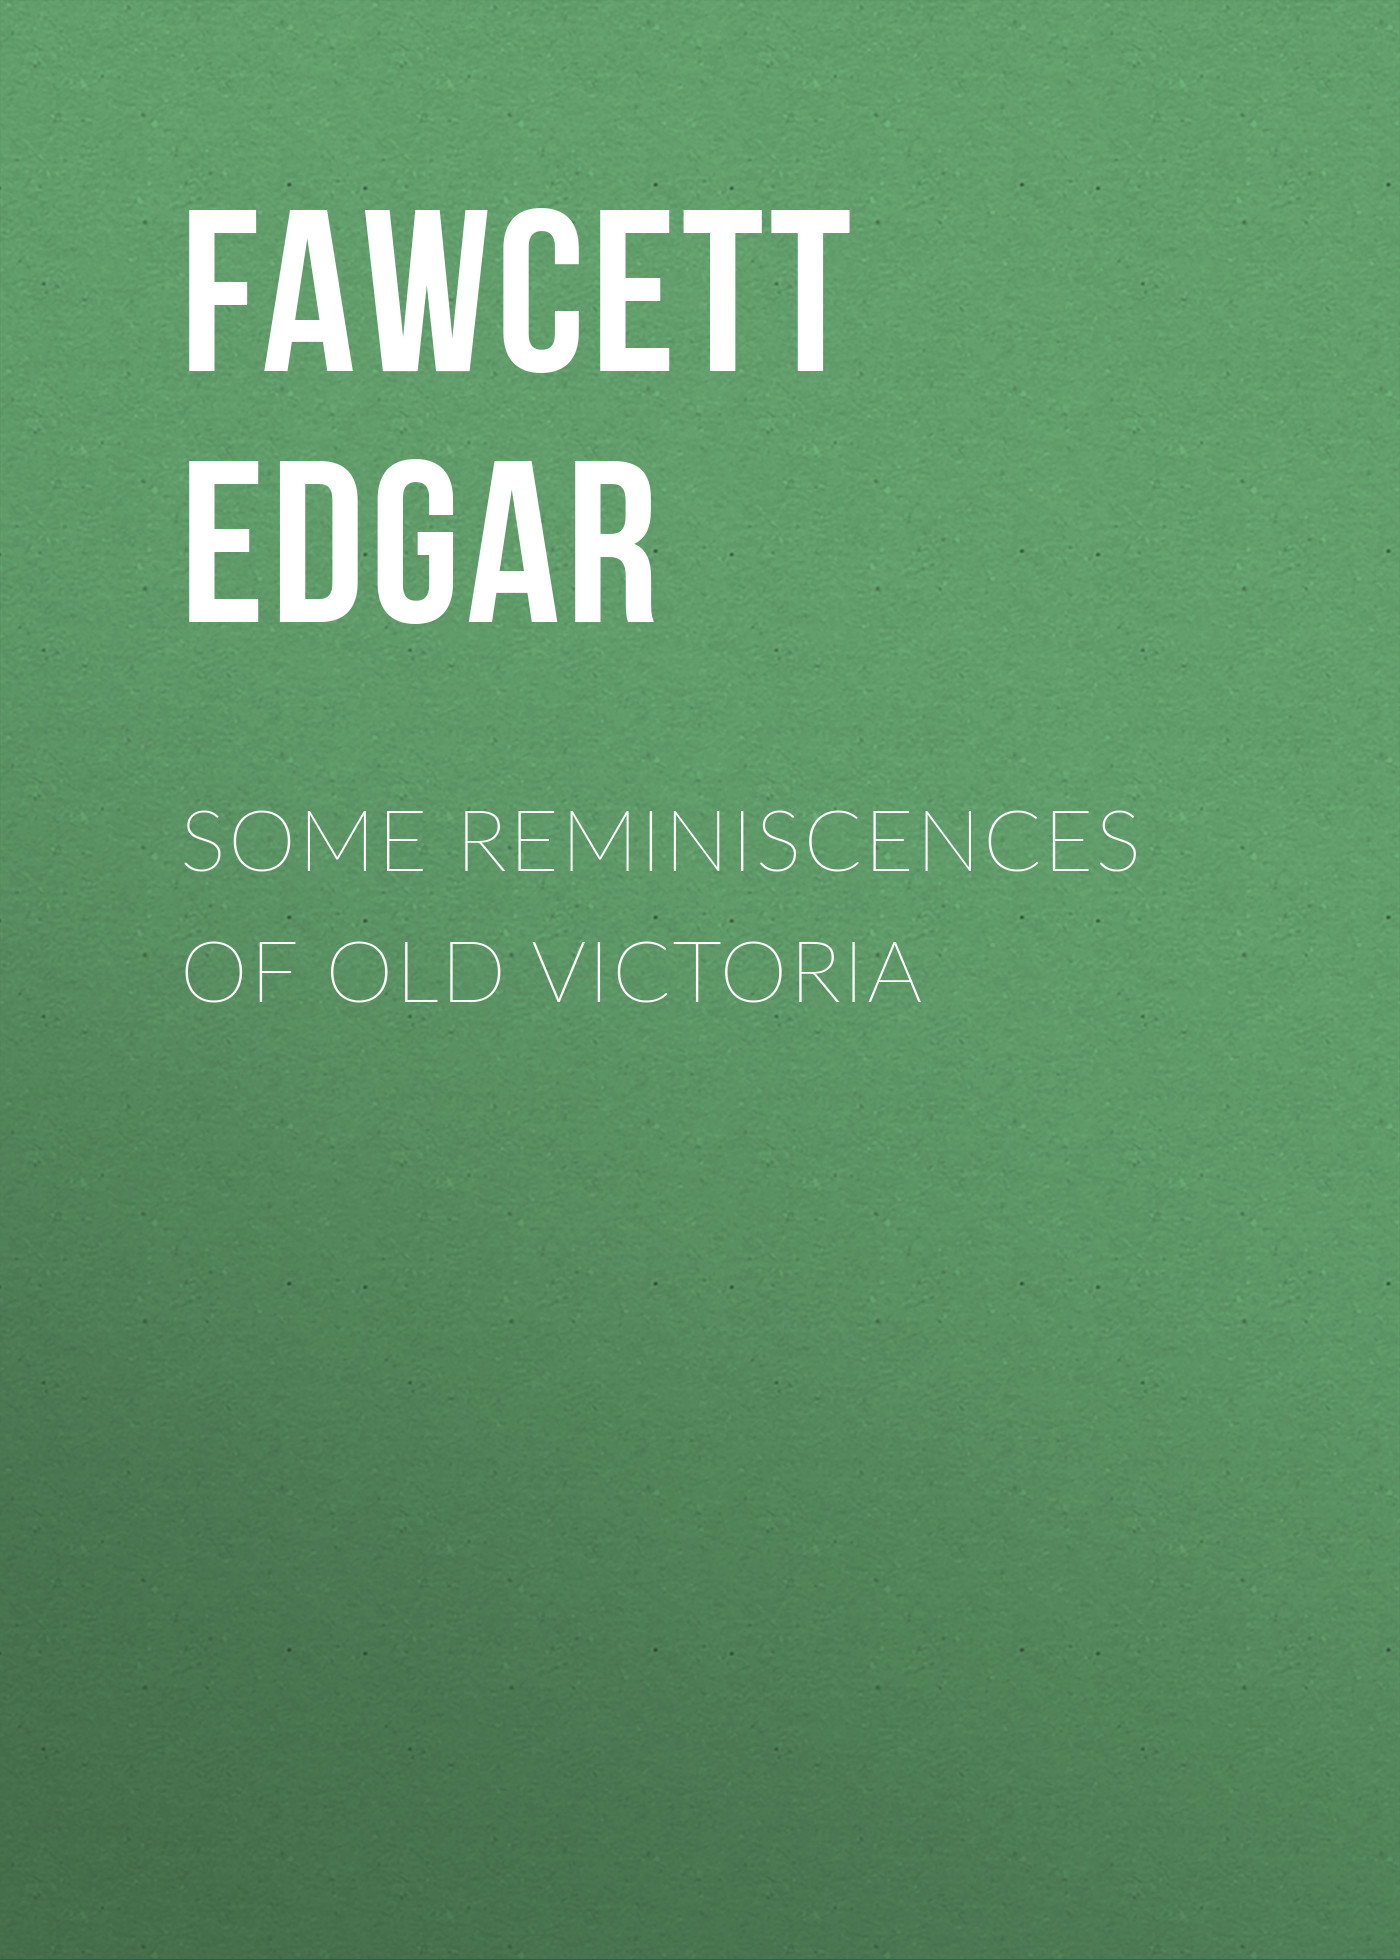 Fawcett Edgar Some Reminiscences of old Victoria a dubuque reminiscences d operas italiens